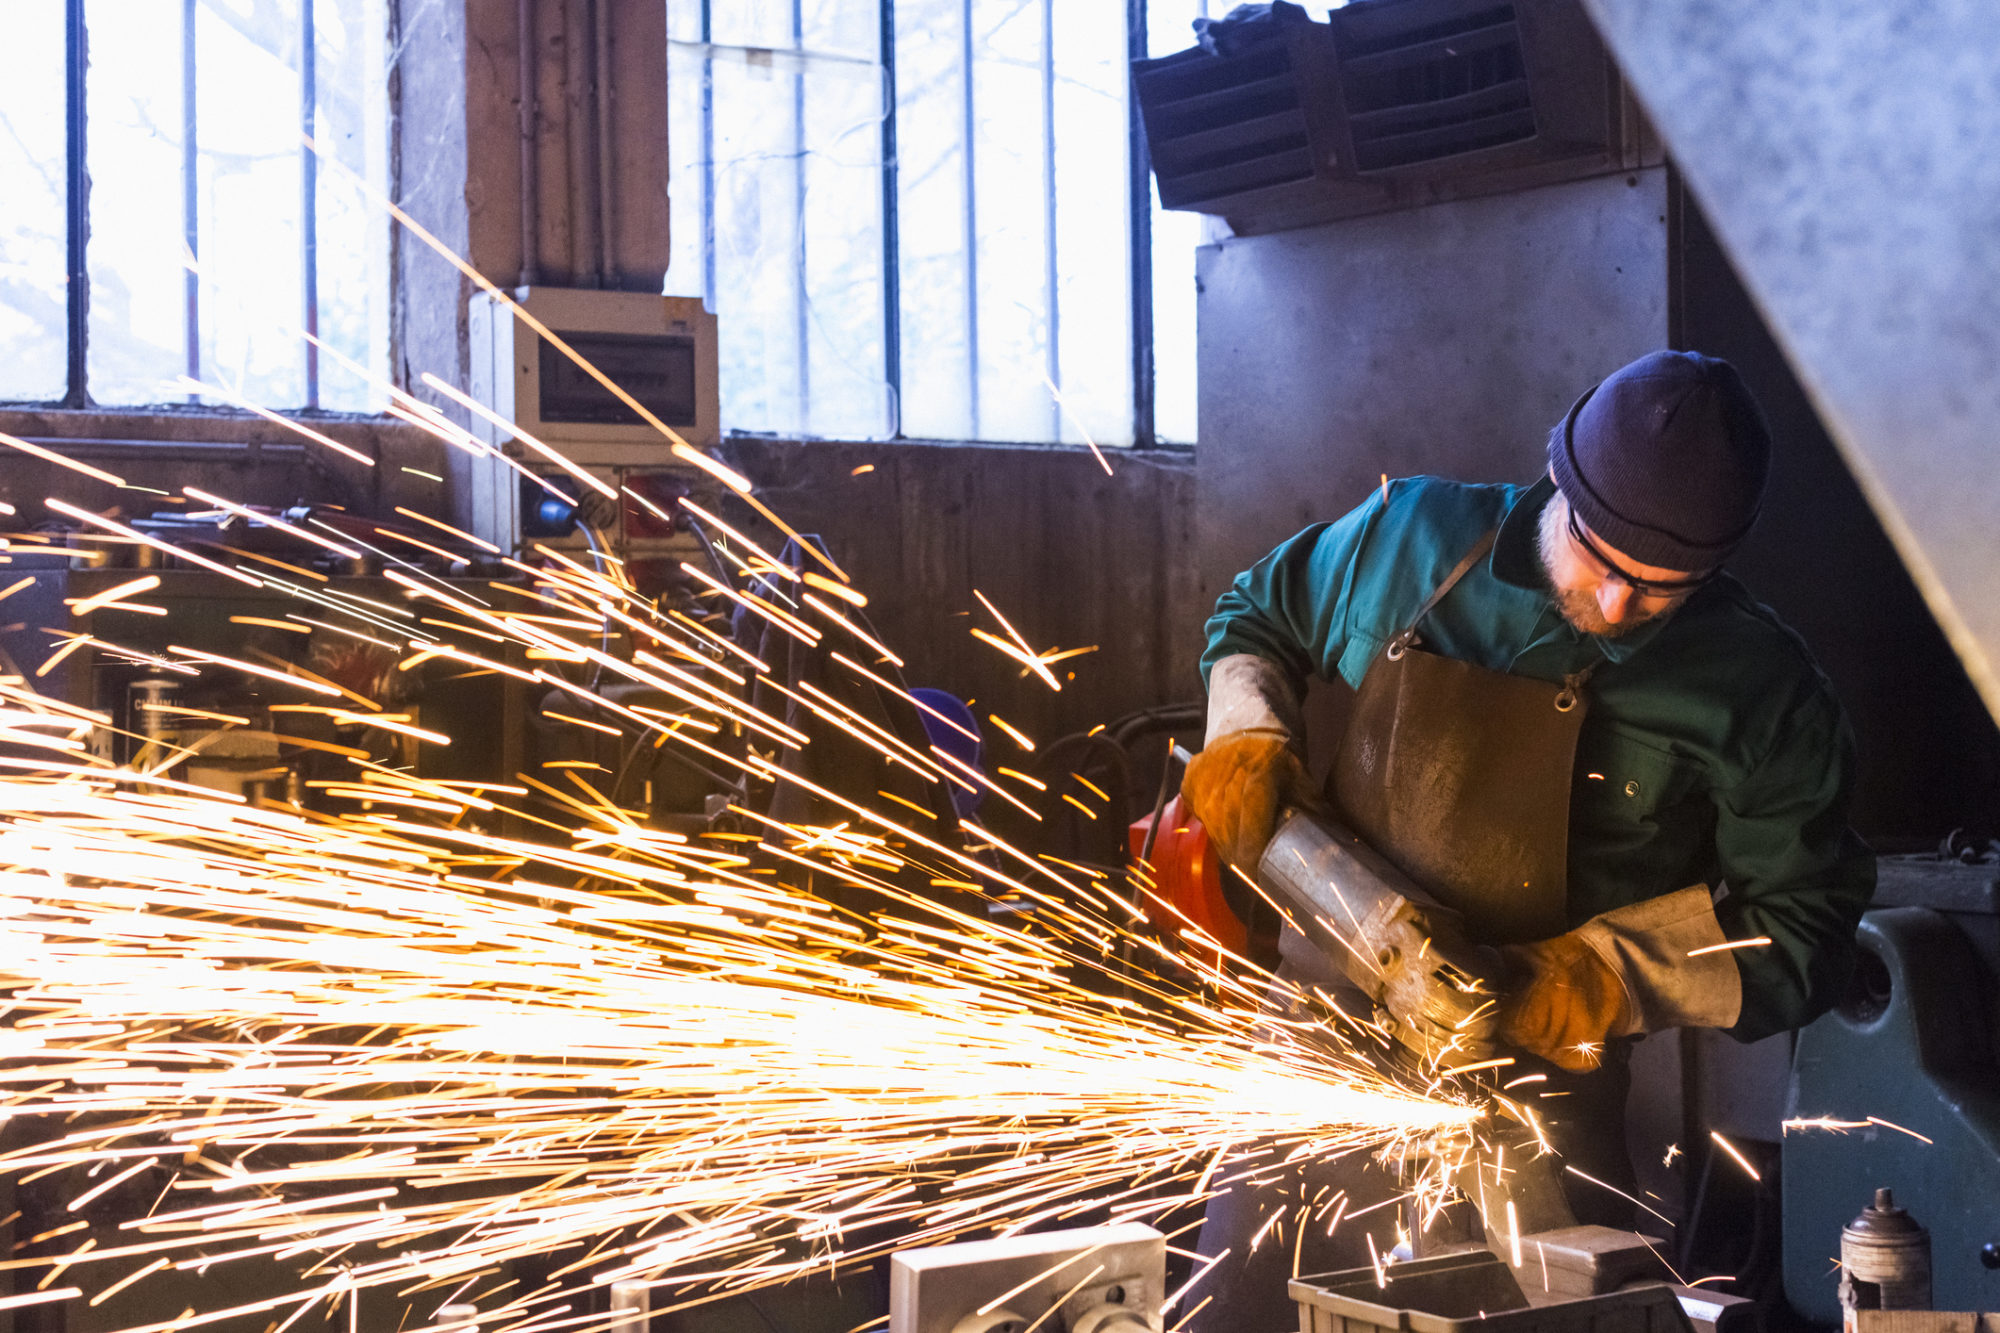 Worker with metal cutting grinder who may need a personal injury lawyer